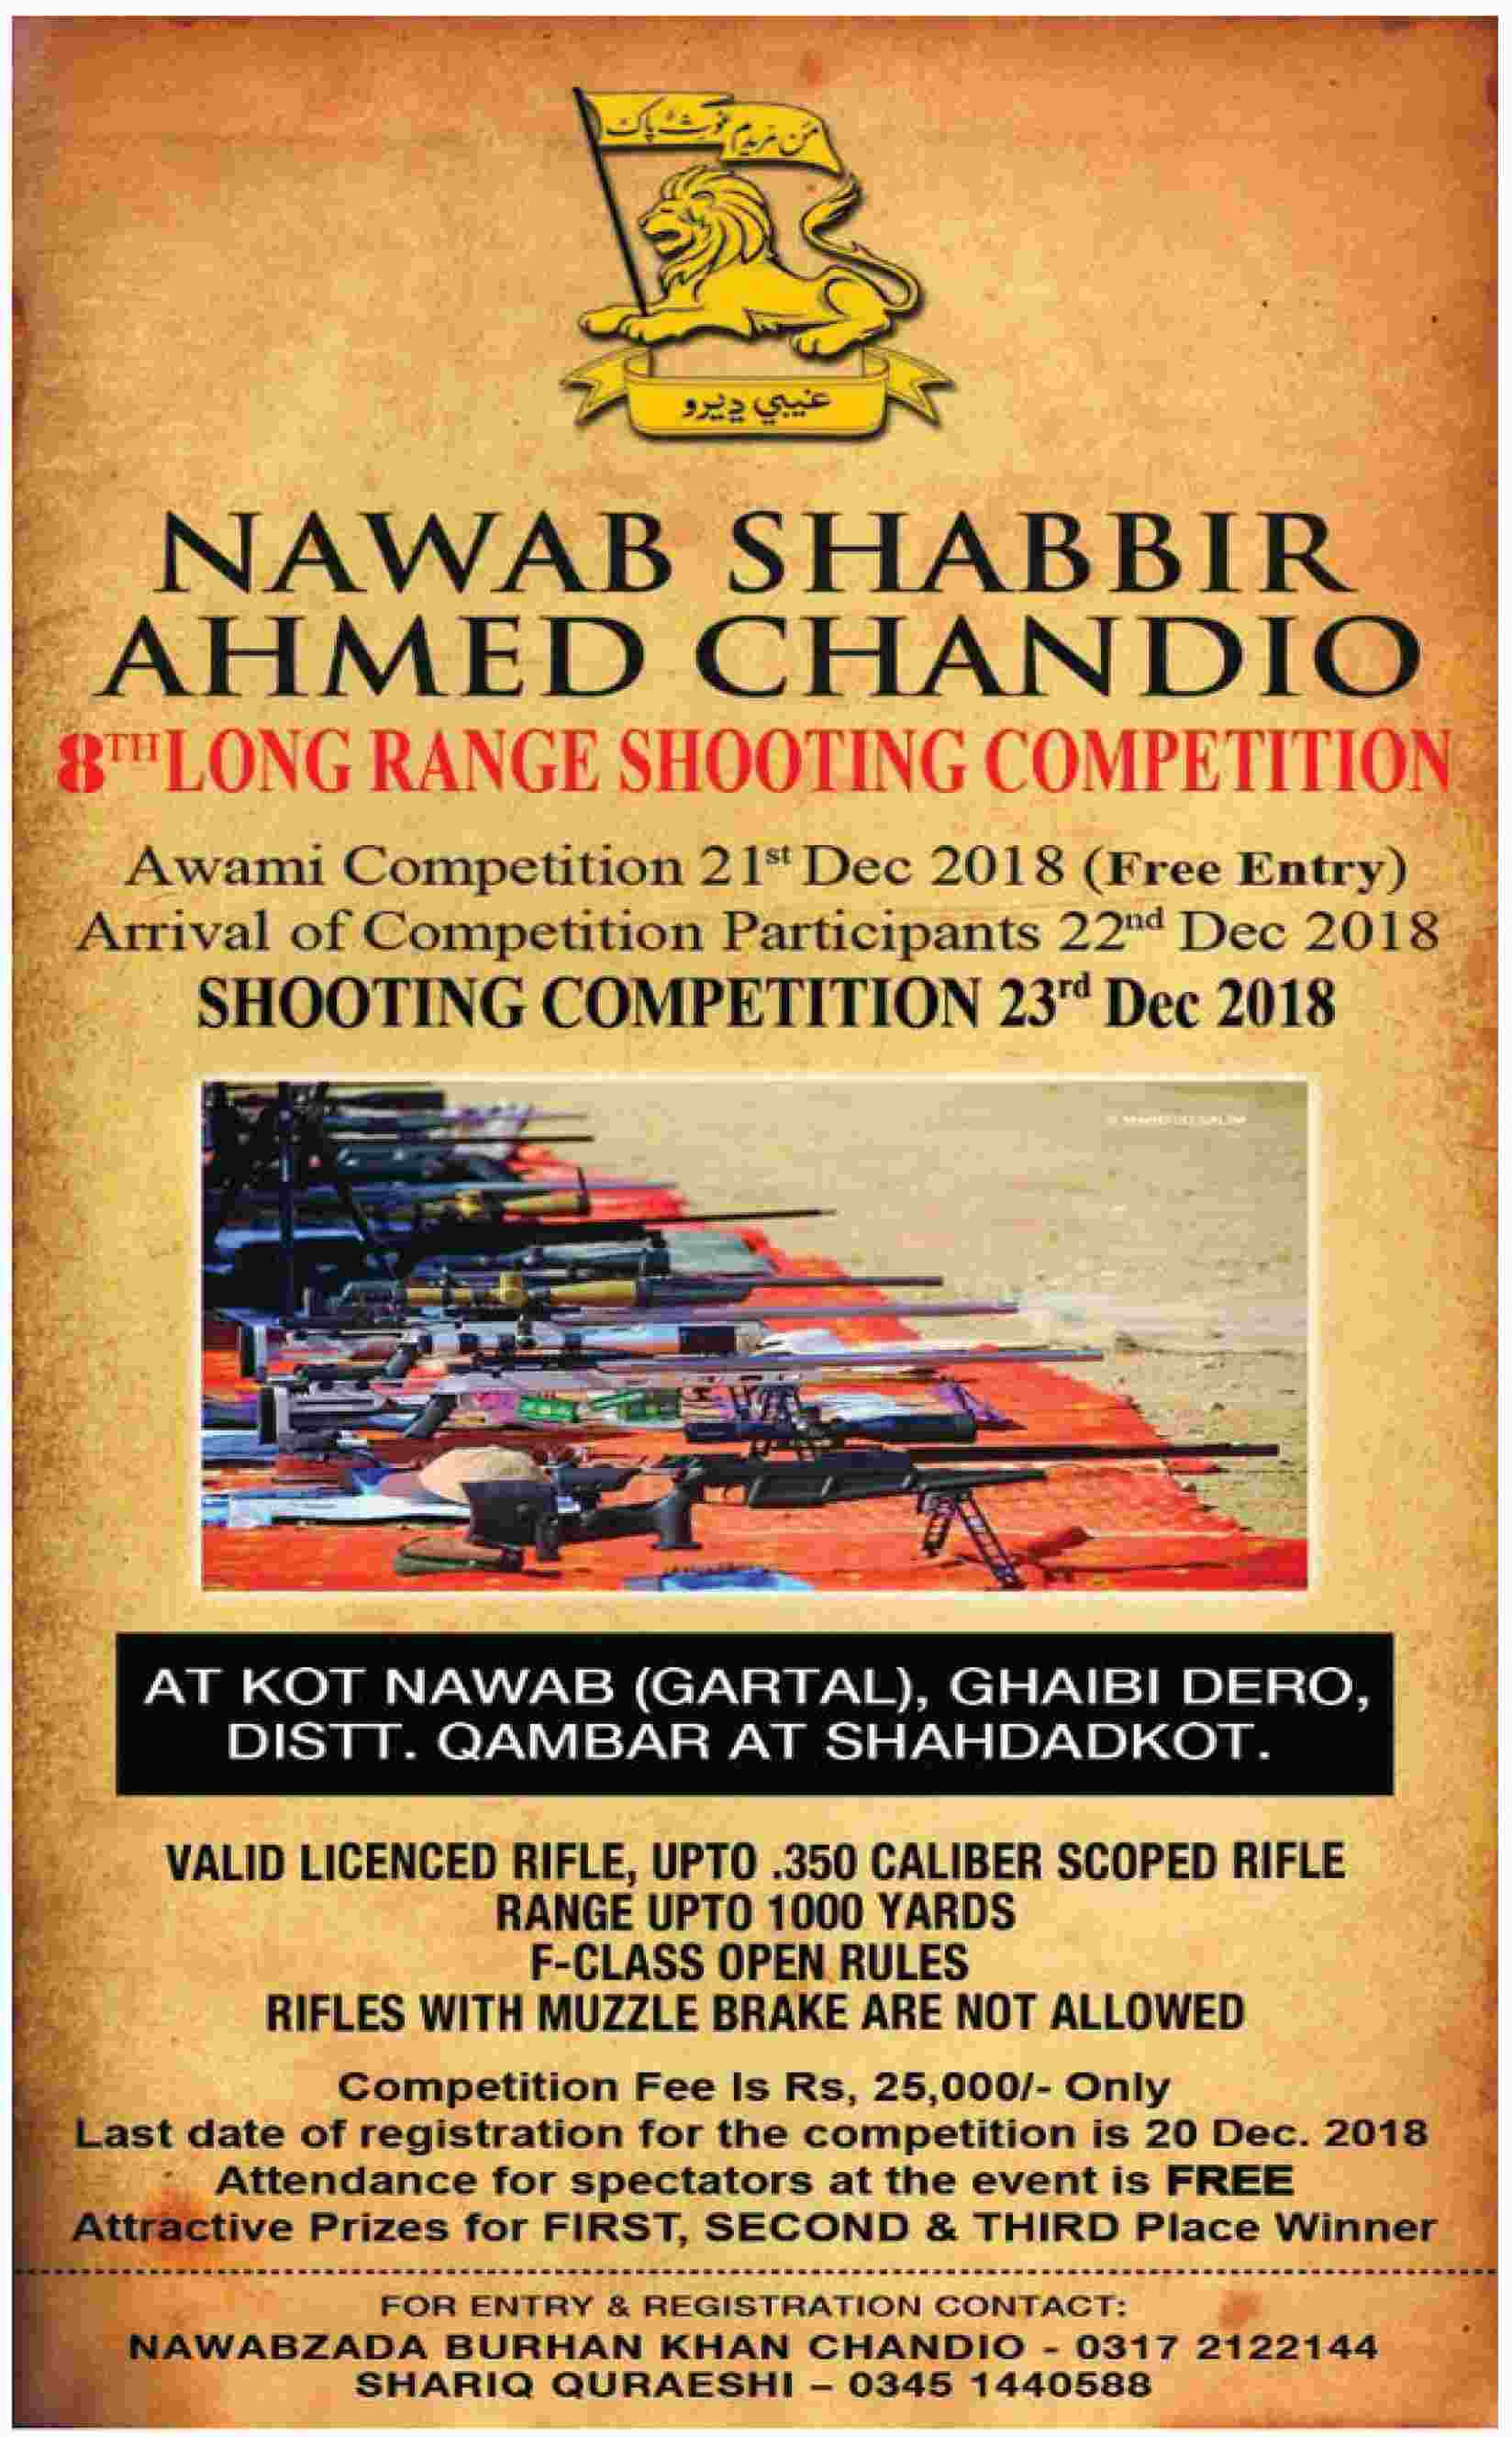 Nawab Shabbir Ahmed Chandio 8th Long Range Shooting Competition